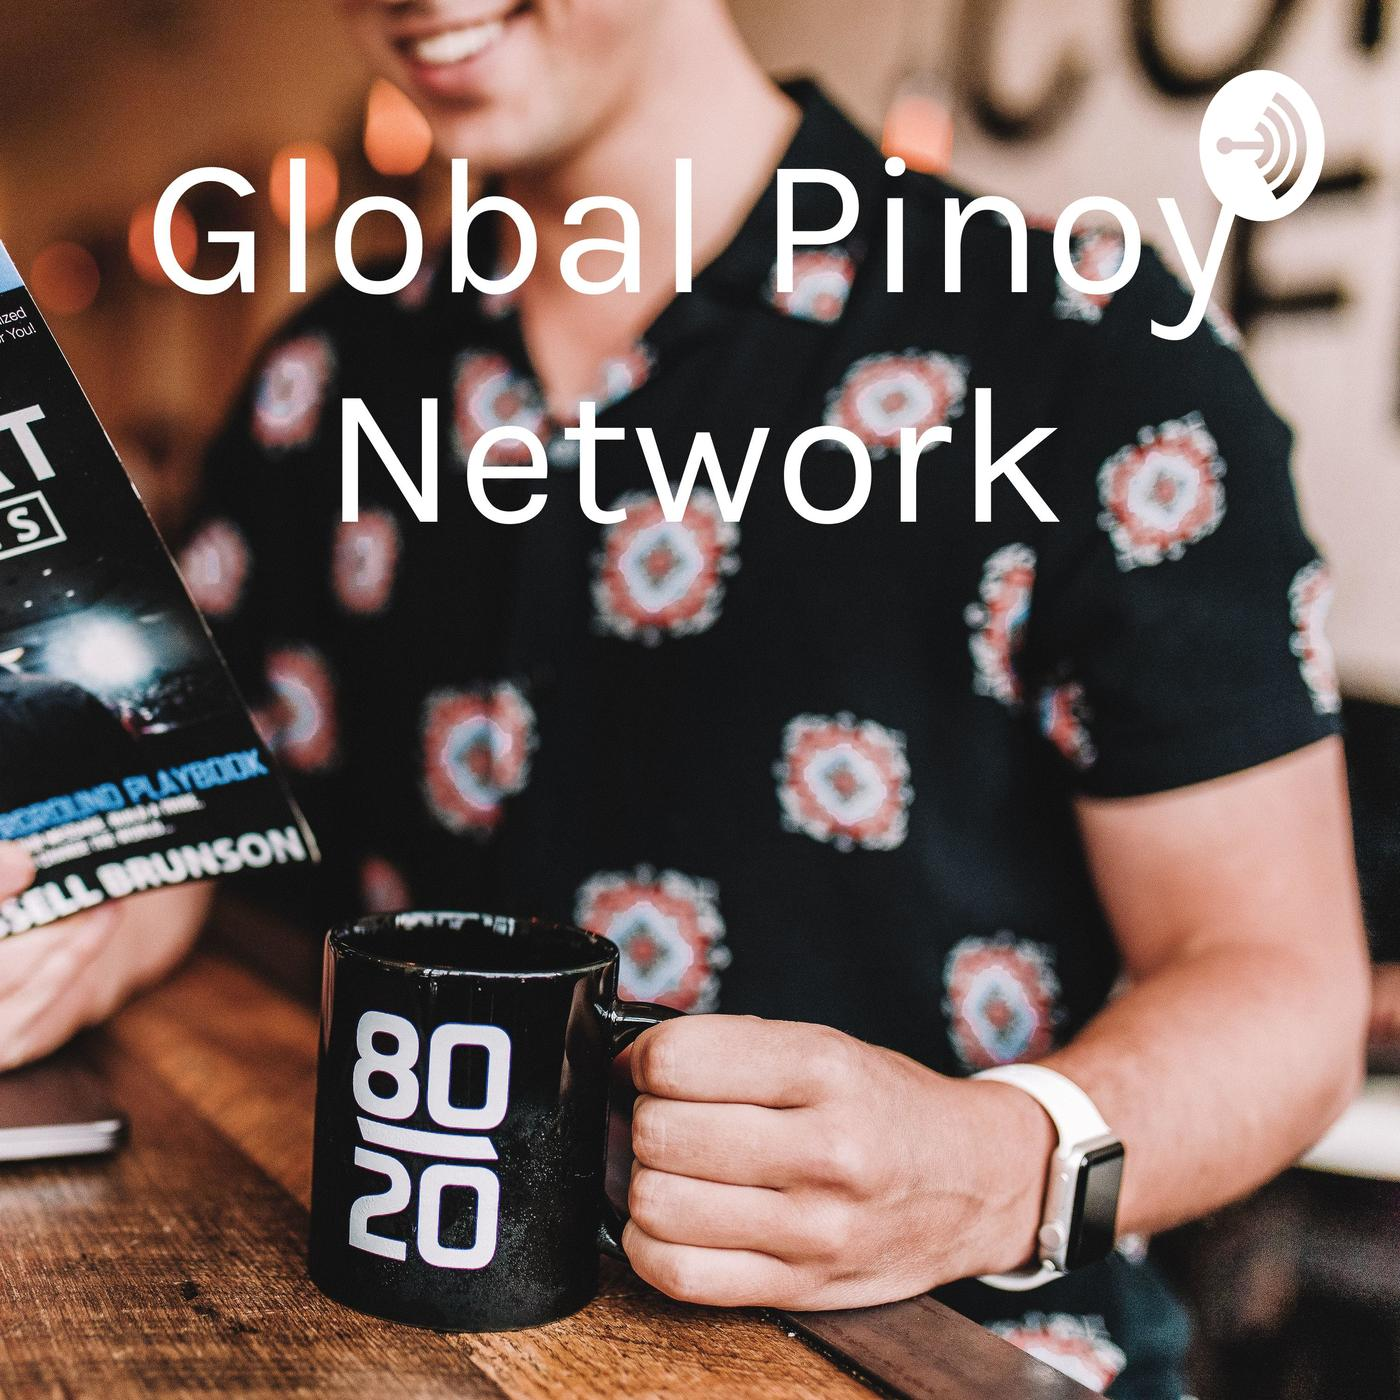 Global Pinoy Network Podcast Global Pinoy Network Listen Notes Recent news from pinoynetwork channel. listen notes